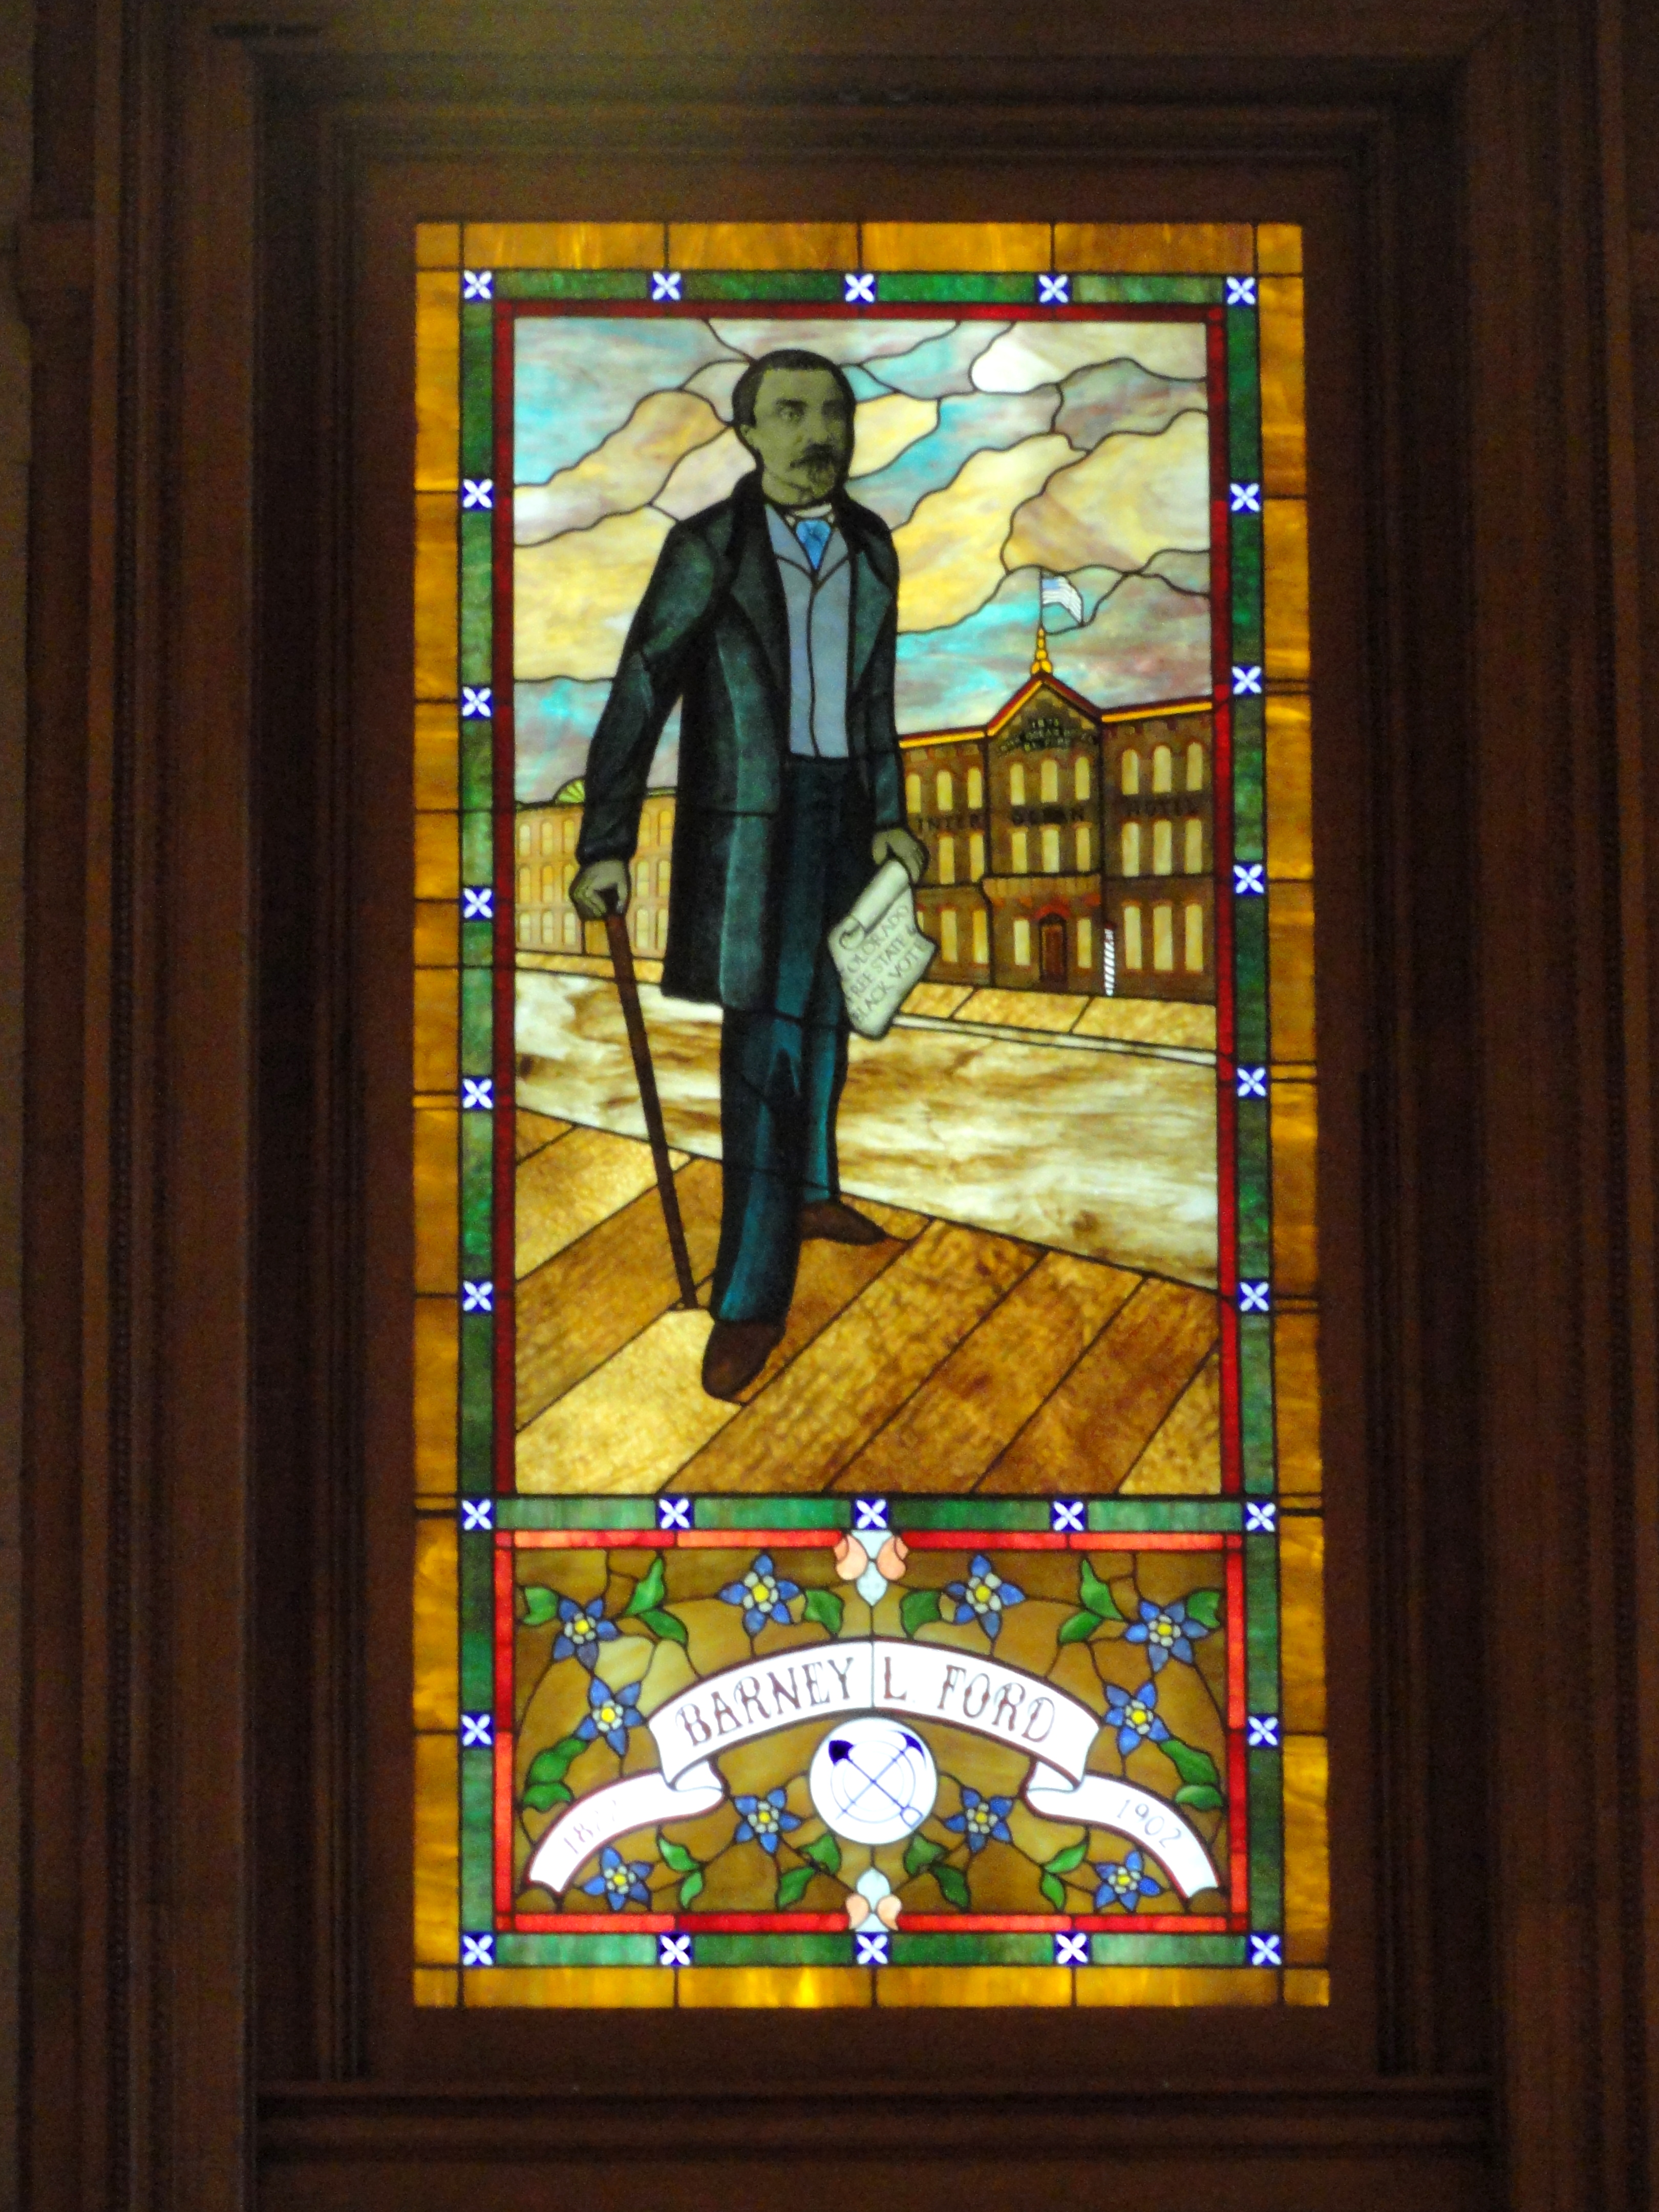 Stained glass window of Barney L. Ford at the Colorado State Capitol